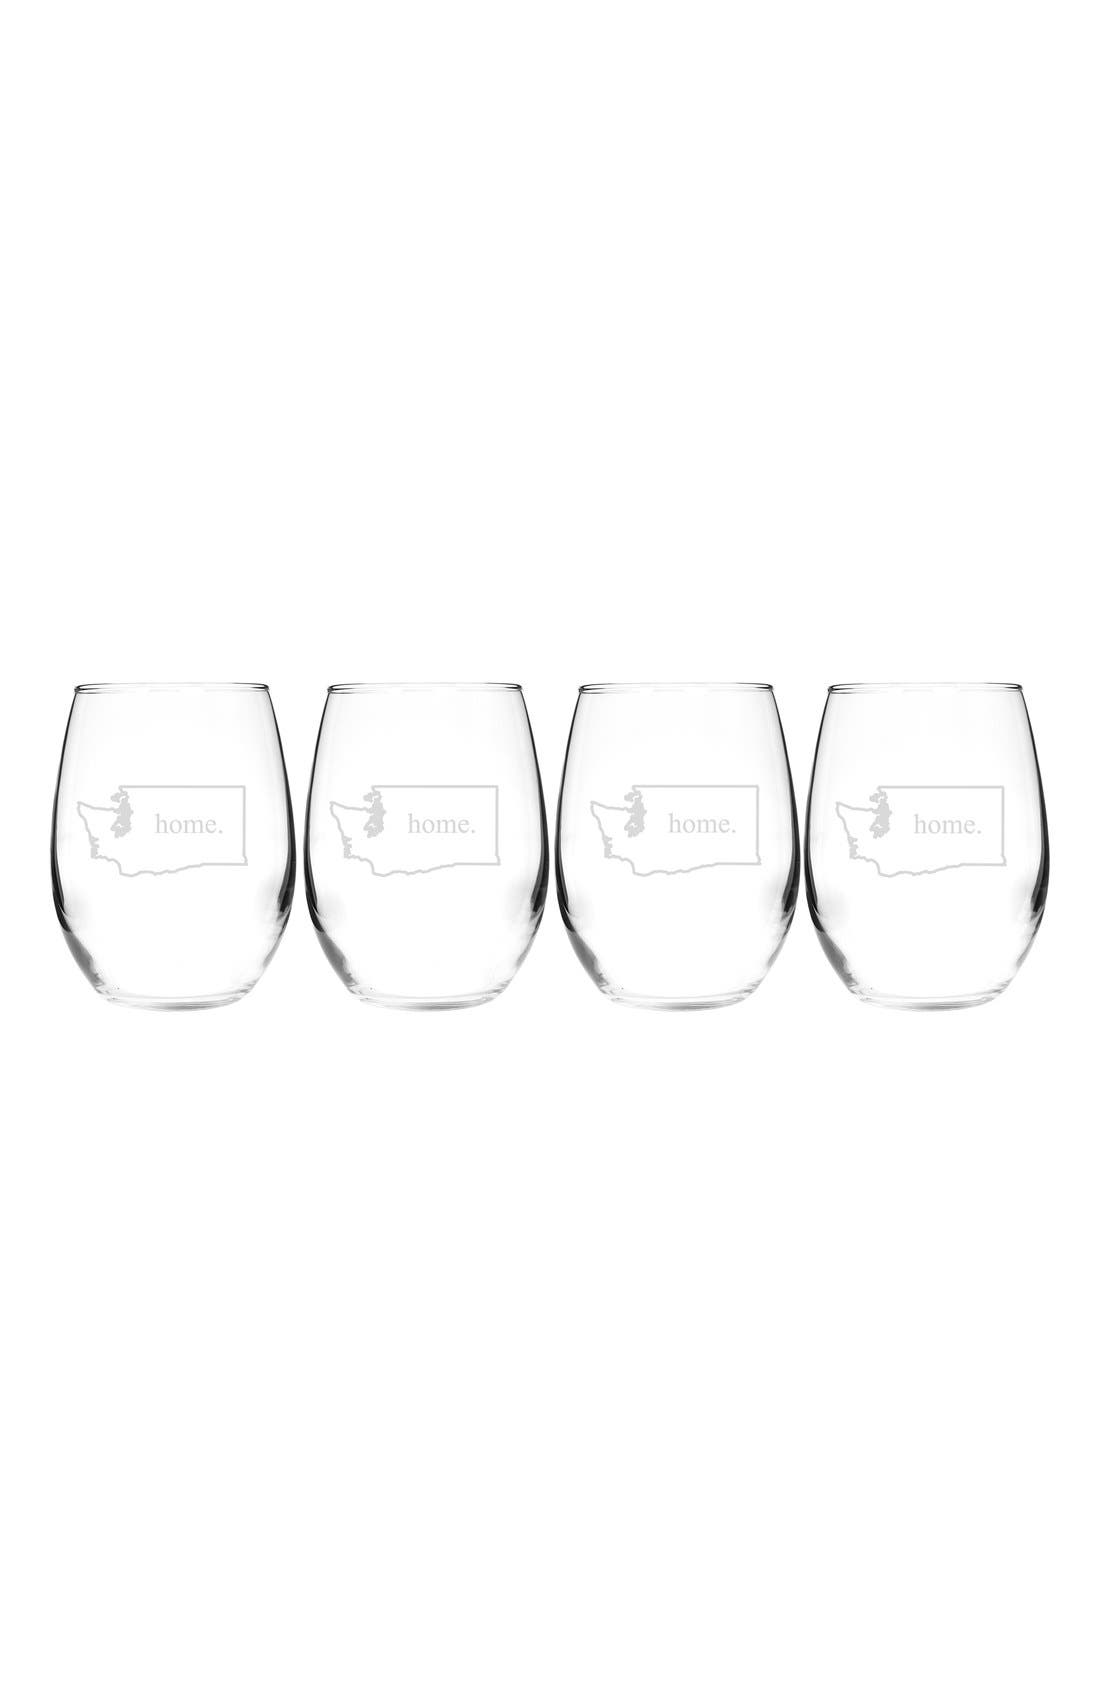 Home State Set of 4 Stemless Wine Glasses,                             Main thumbnail 47, color,